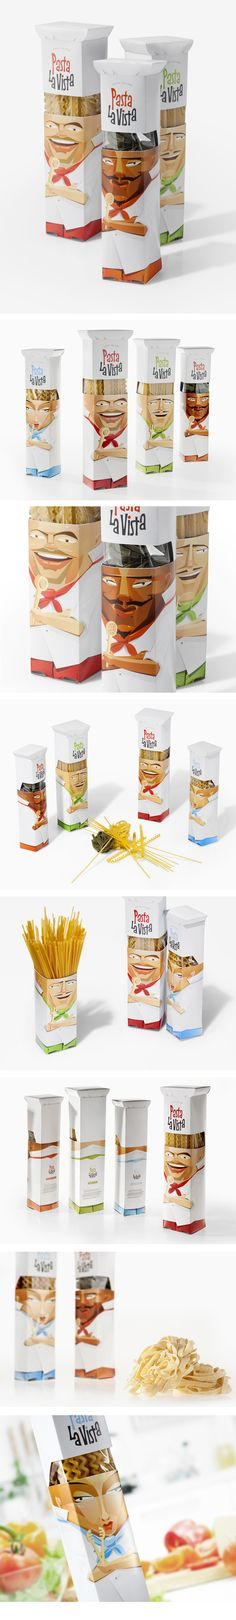 Fun pasta packaging